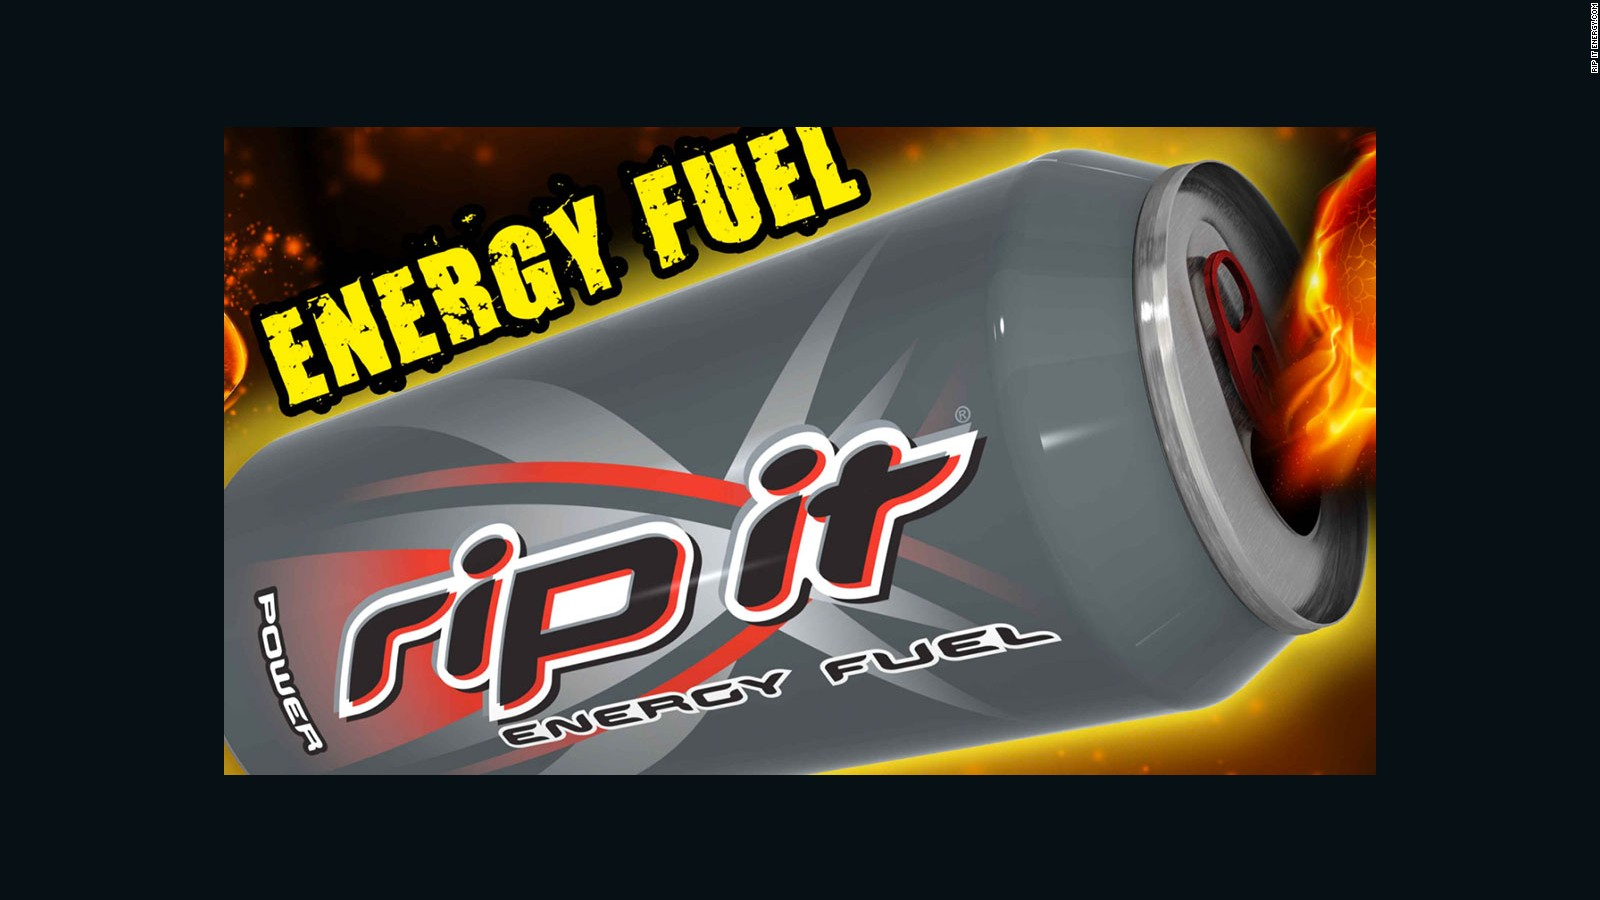 Army Warns Of New Threat Energy Drinks